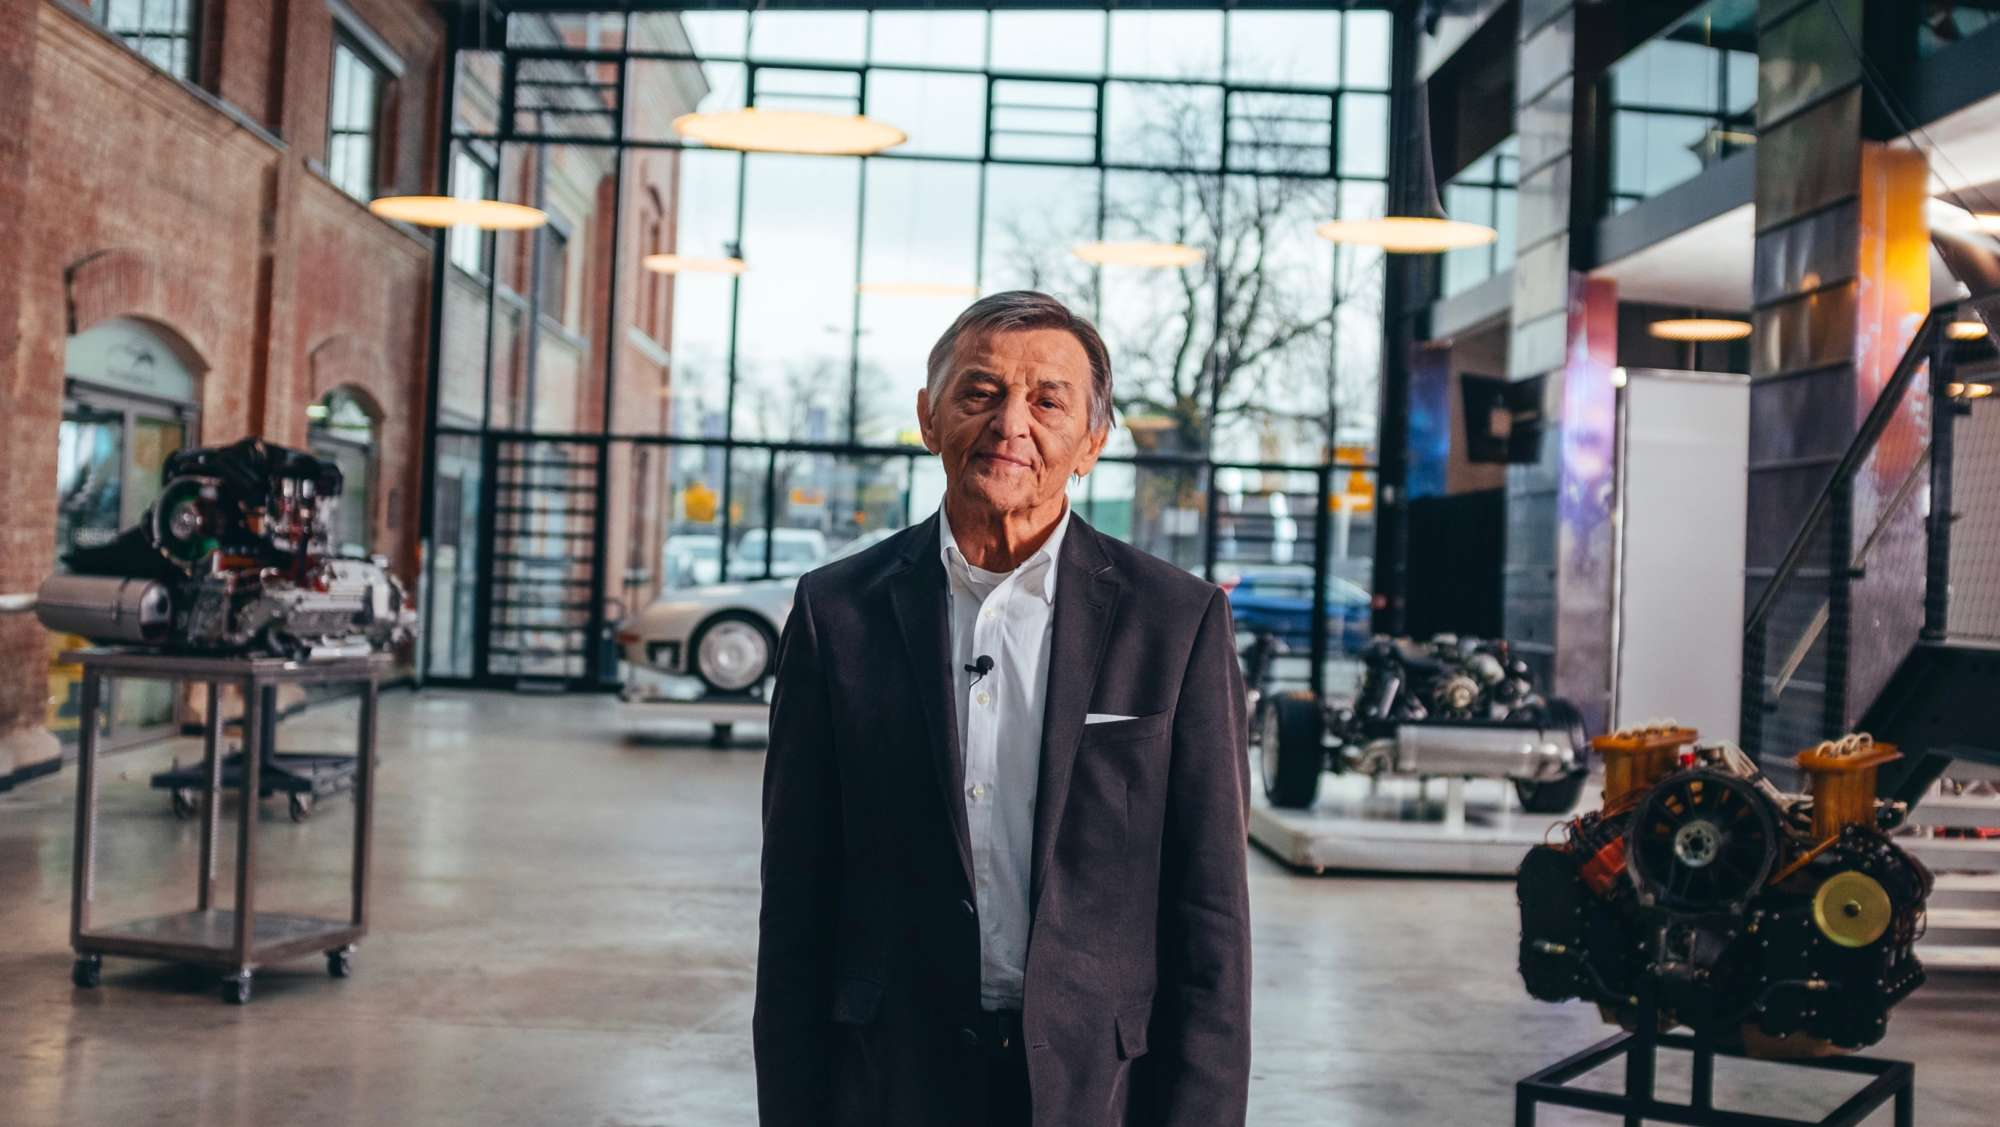 The story of Porsche's engine mastermind Hans Mezger